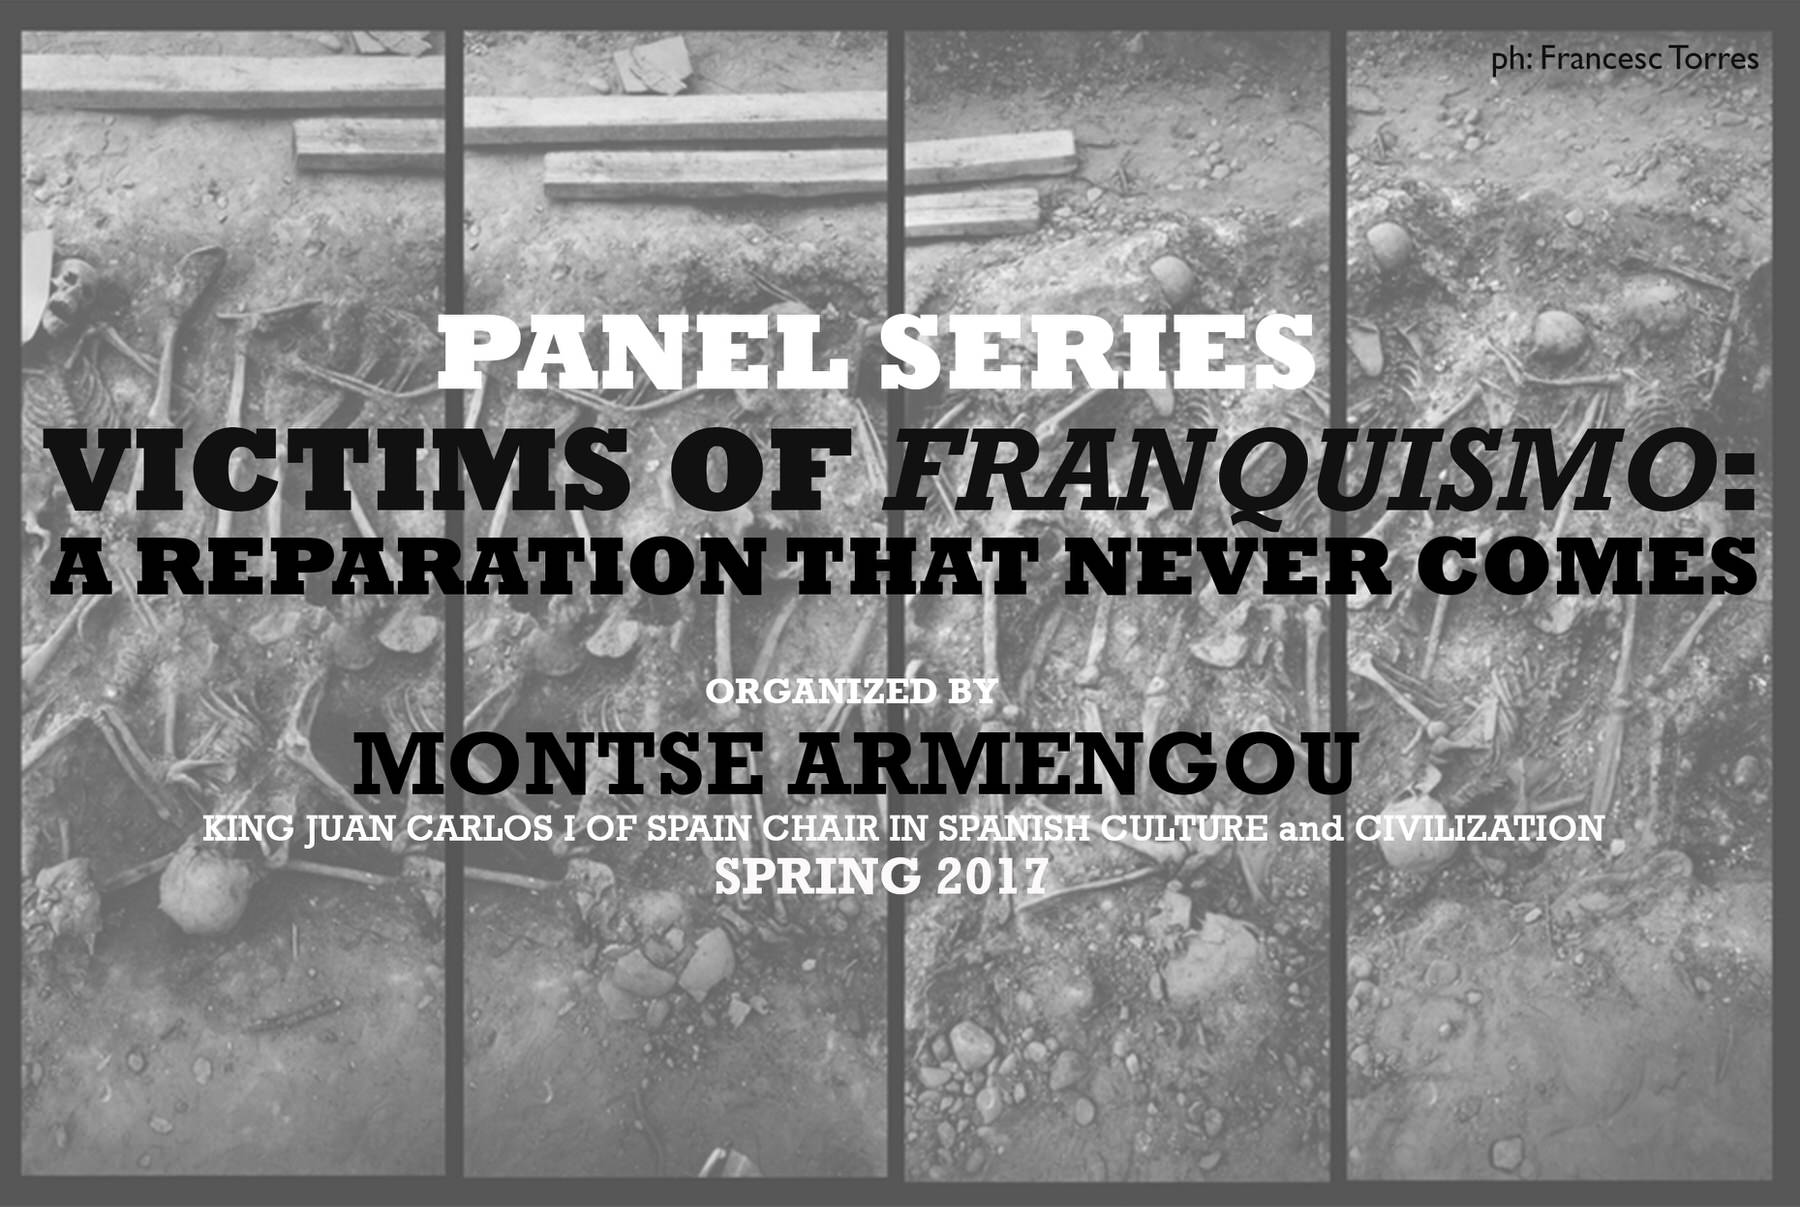 image from Monday, April 24, 6.30pm | Panel 4: Imperfect Transition and Challenges of the Present. Victims, Terrorism, and the State